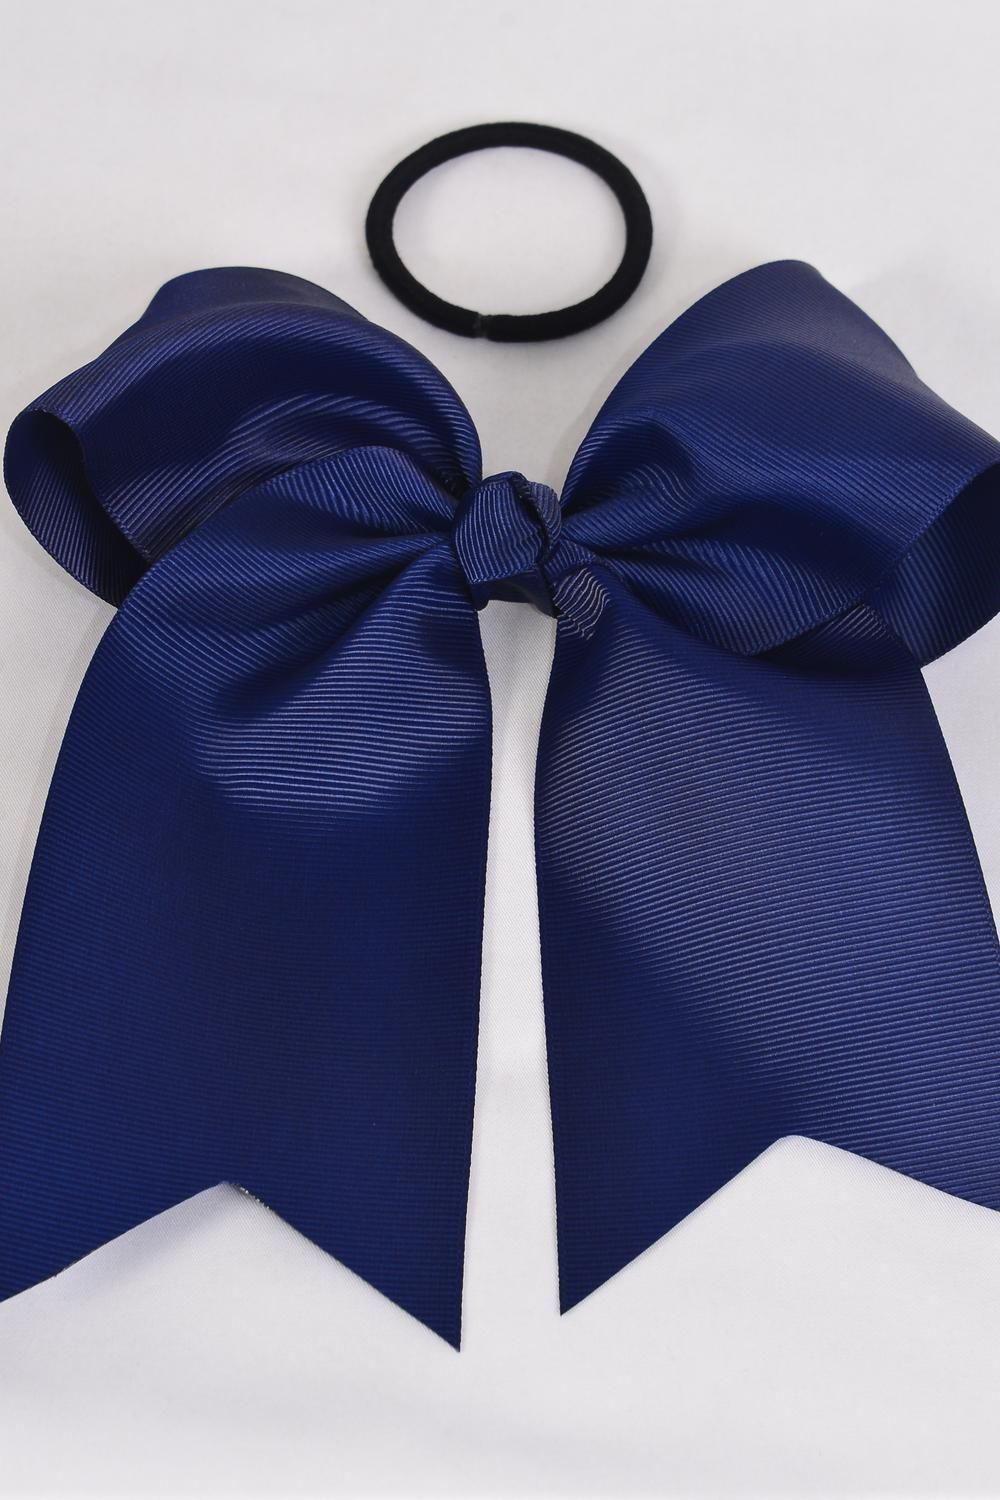 "Hair Bow Extra Jumbo Long Tail Cheer Type Bow Navy Elastic Grosgrain Bow-tie/DZ **Navy** Elastic,Size-6.5""x 6"" Wide,Clip Strip & UPC Code"